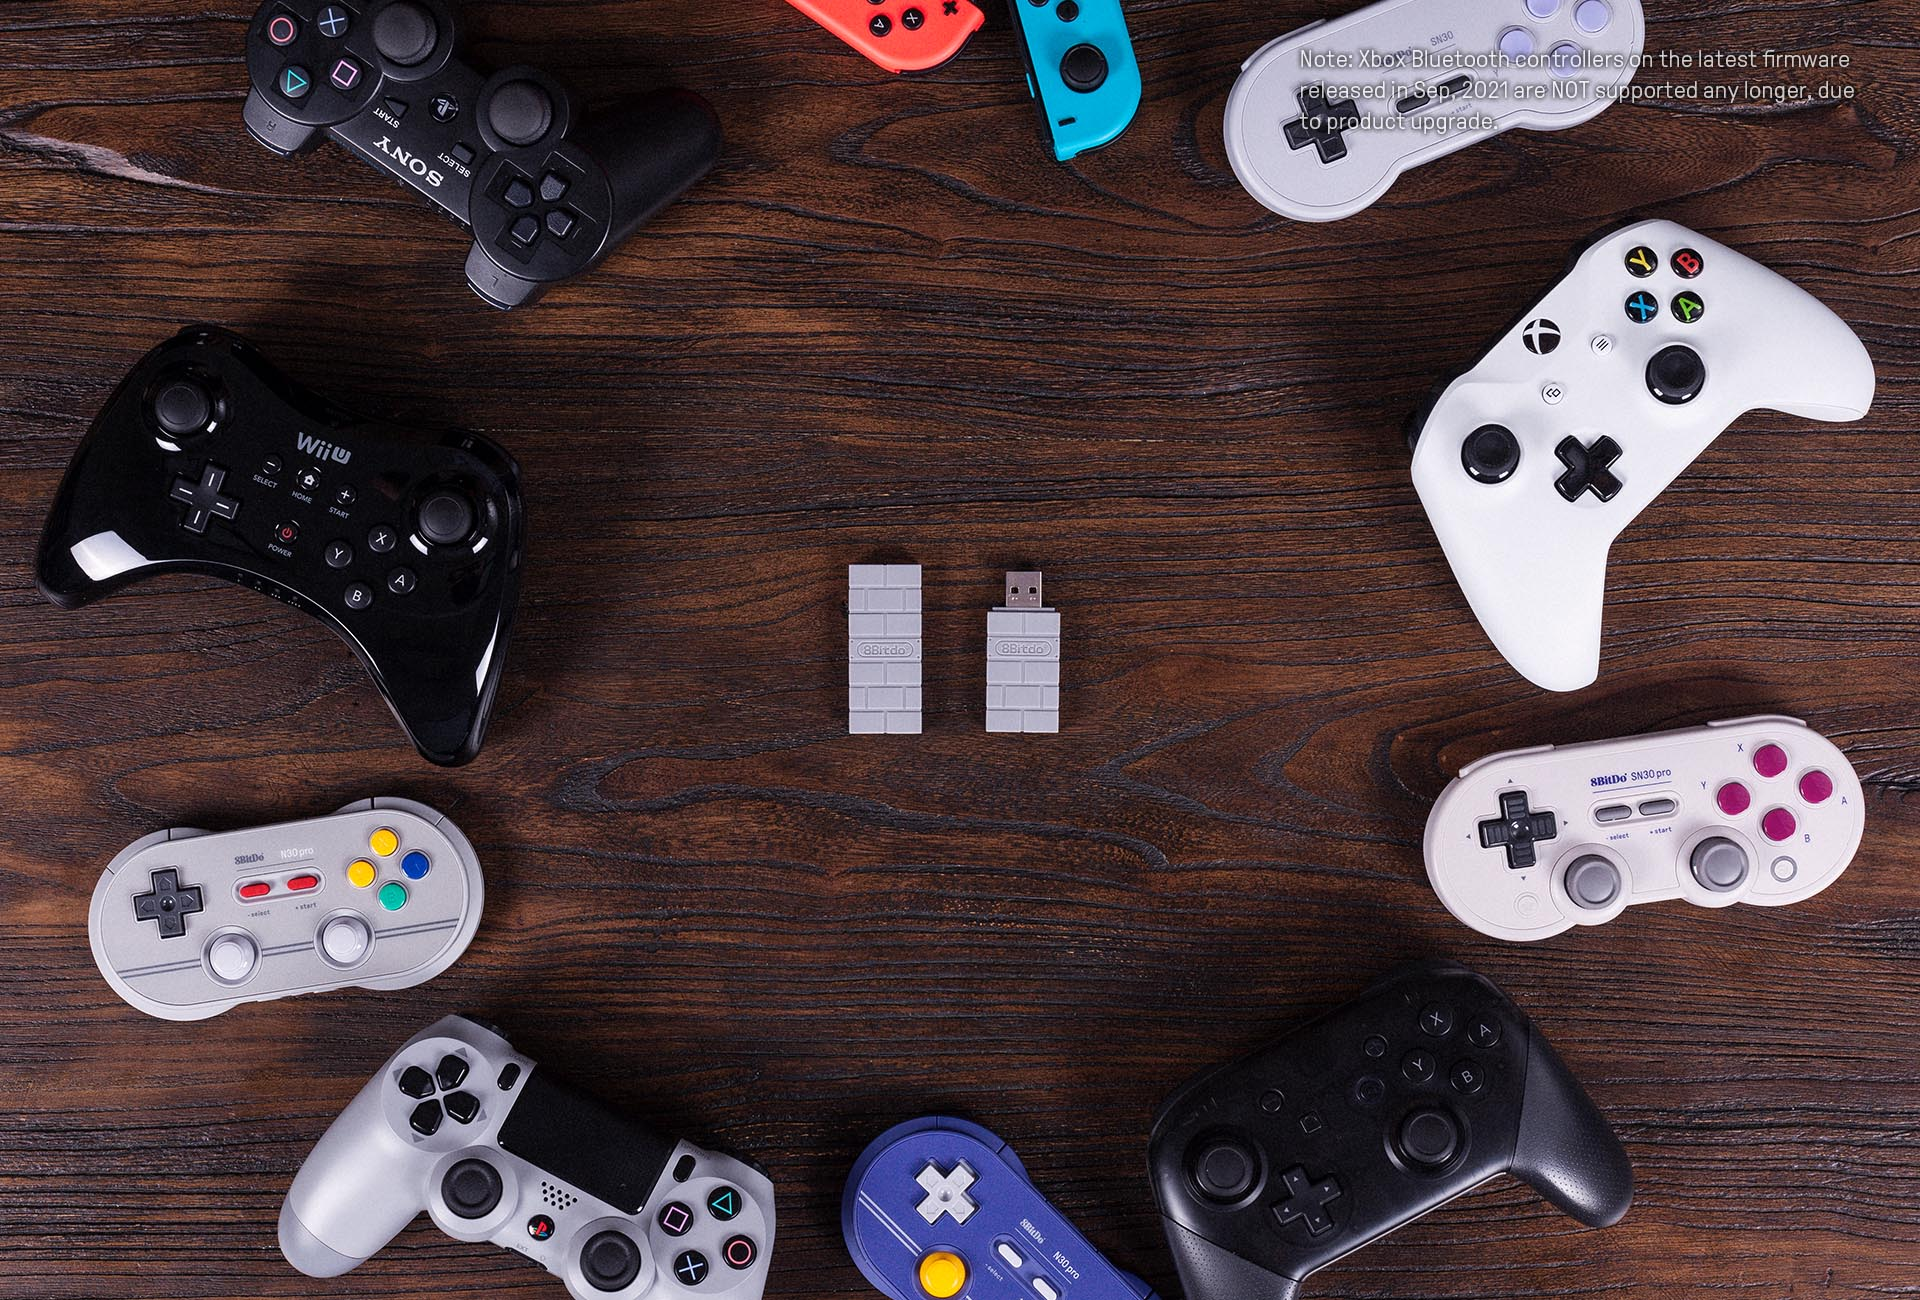 USB Wireless Adapter for PS classic edition | 8BitDo